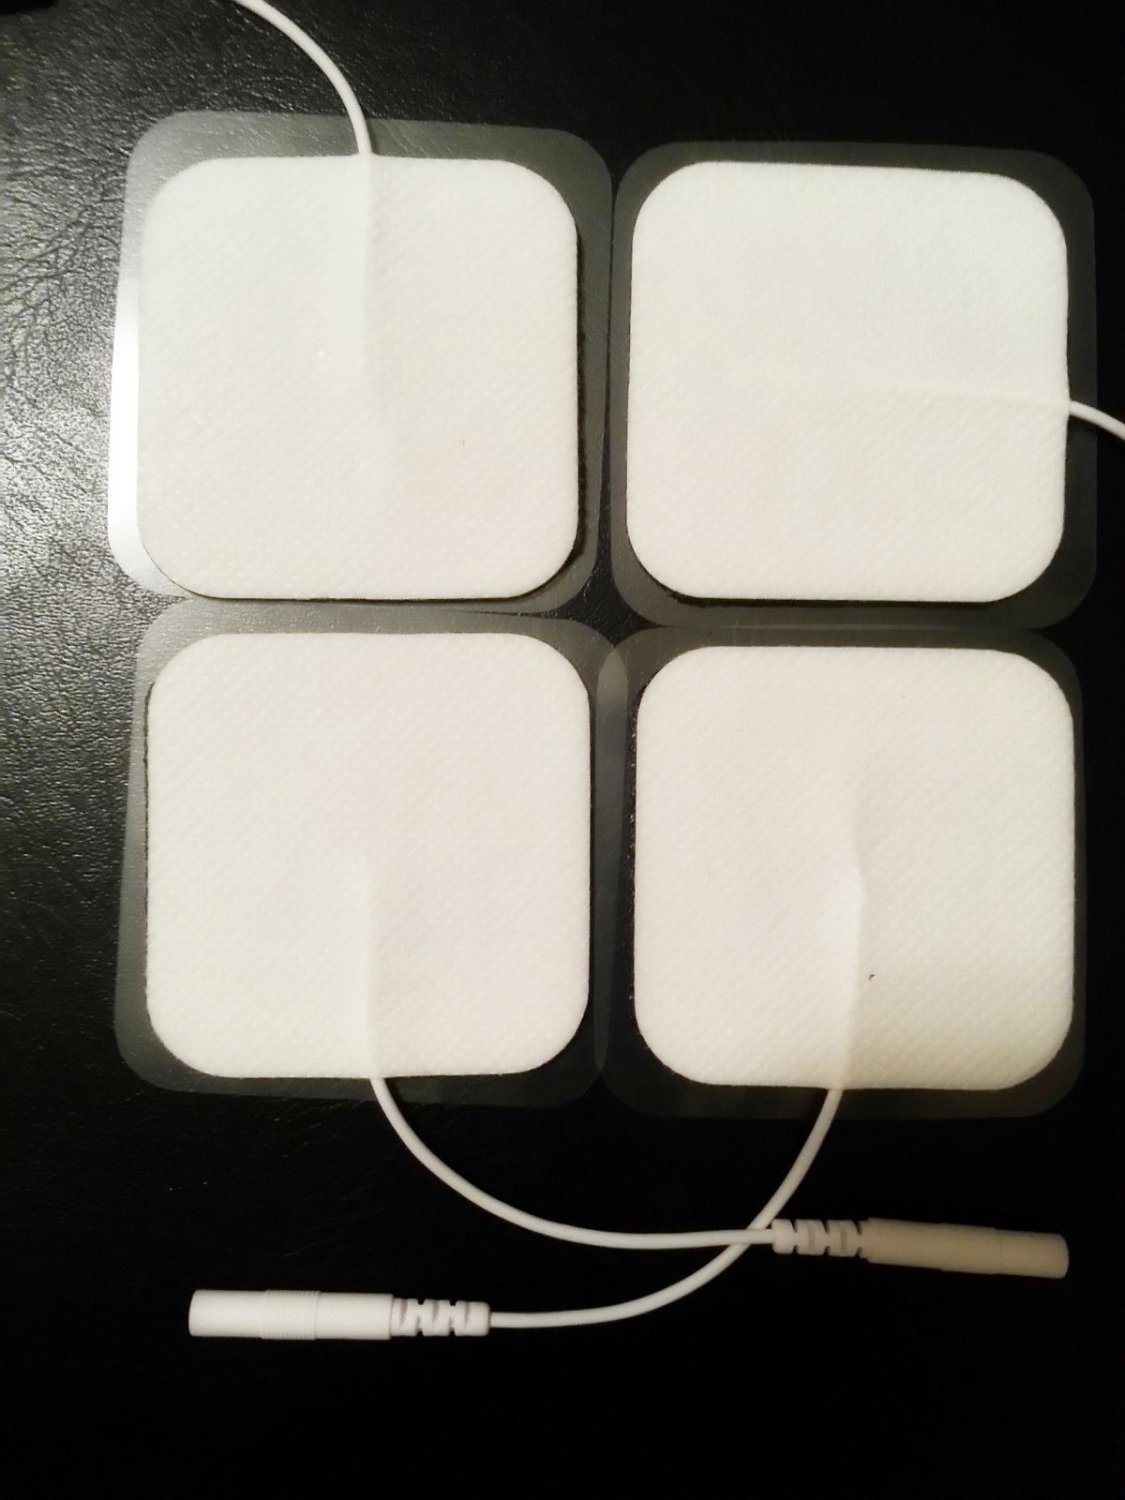 32 PC SQUARE REPLACEMENT ELECTRODE MASSAGE PADS-For MAGIC TOUCH PRO SERIES 103